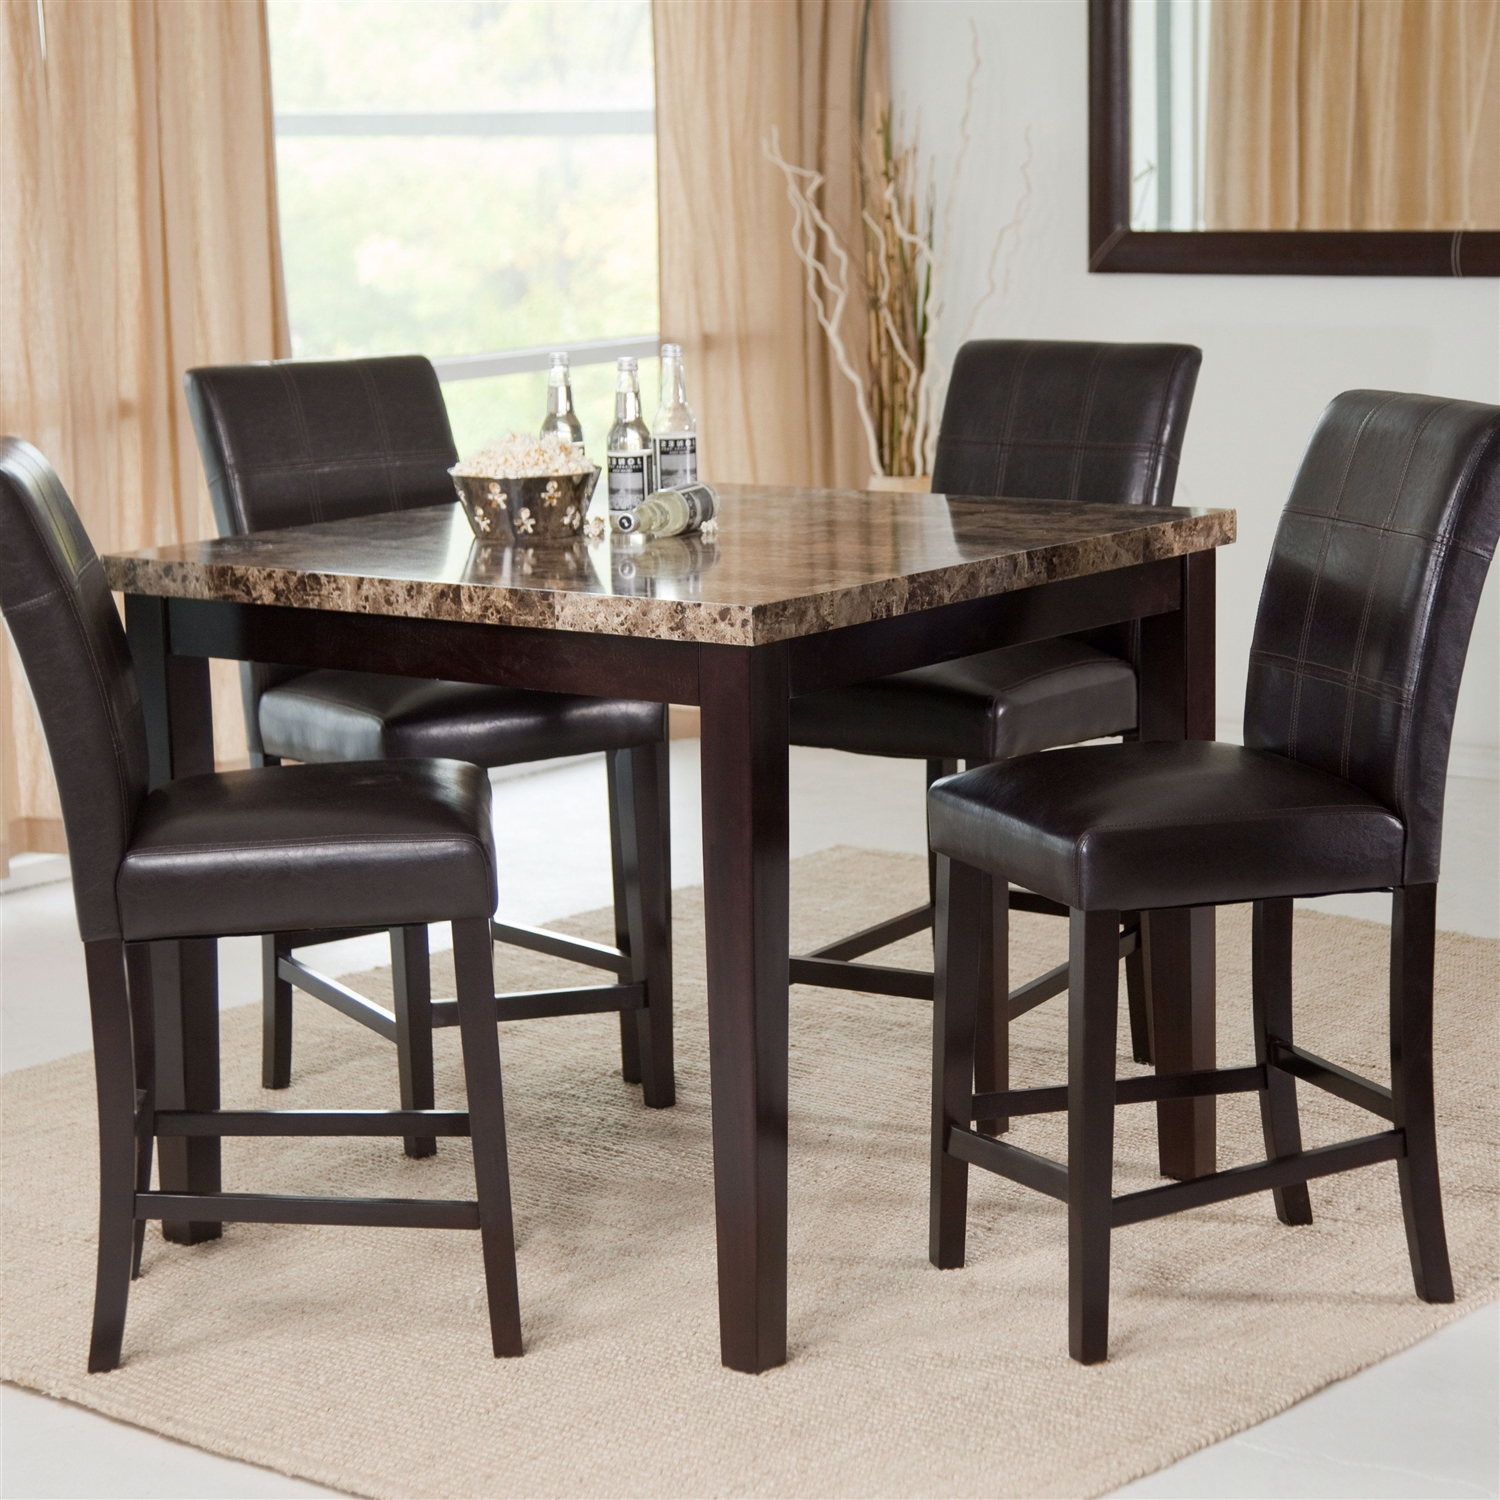 Dining Set With Faux Marble Top Table